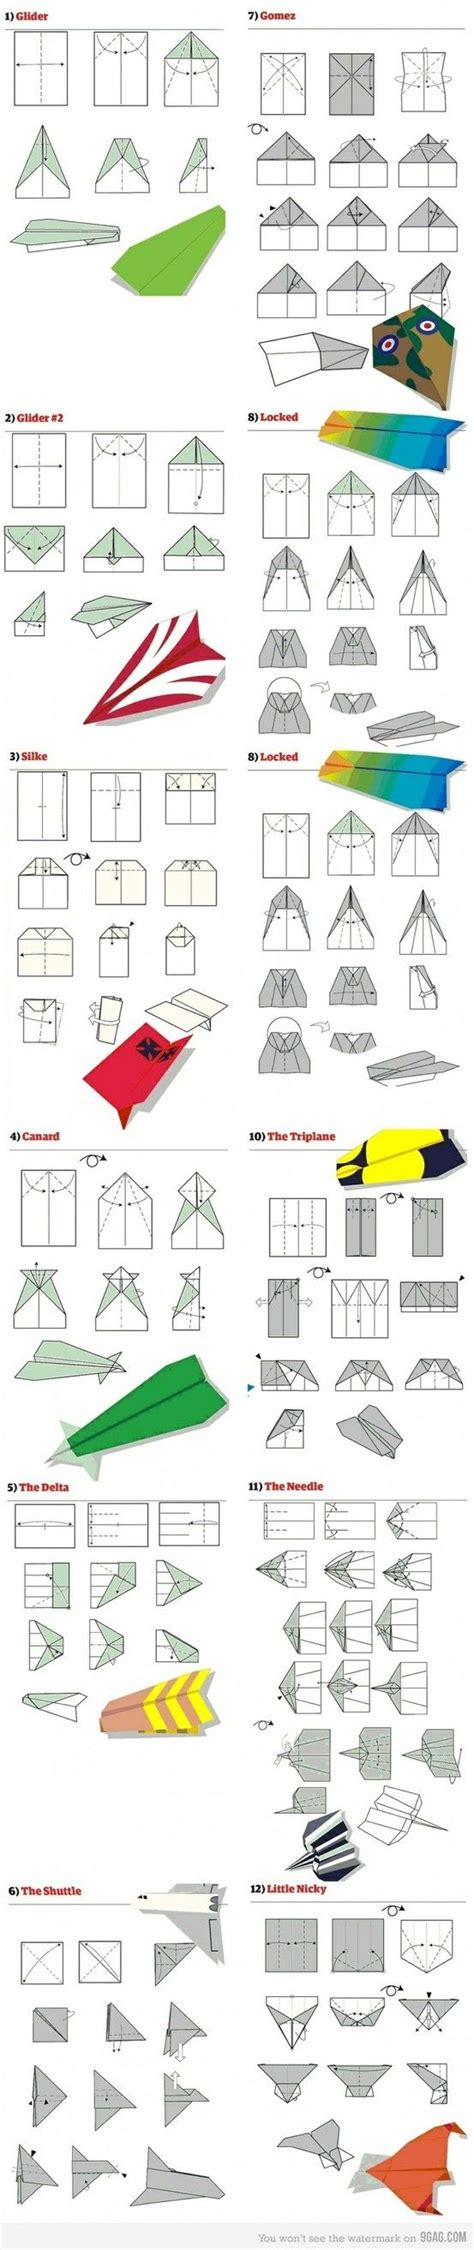 How To Make Different Types Of Paper Airplanes - how to fold different types of paper planes by